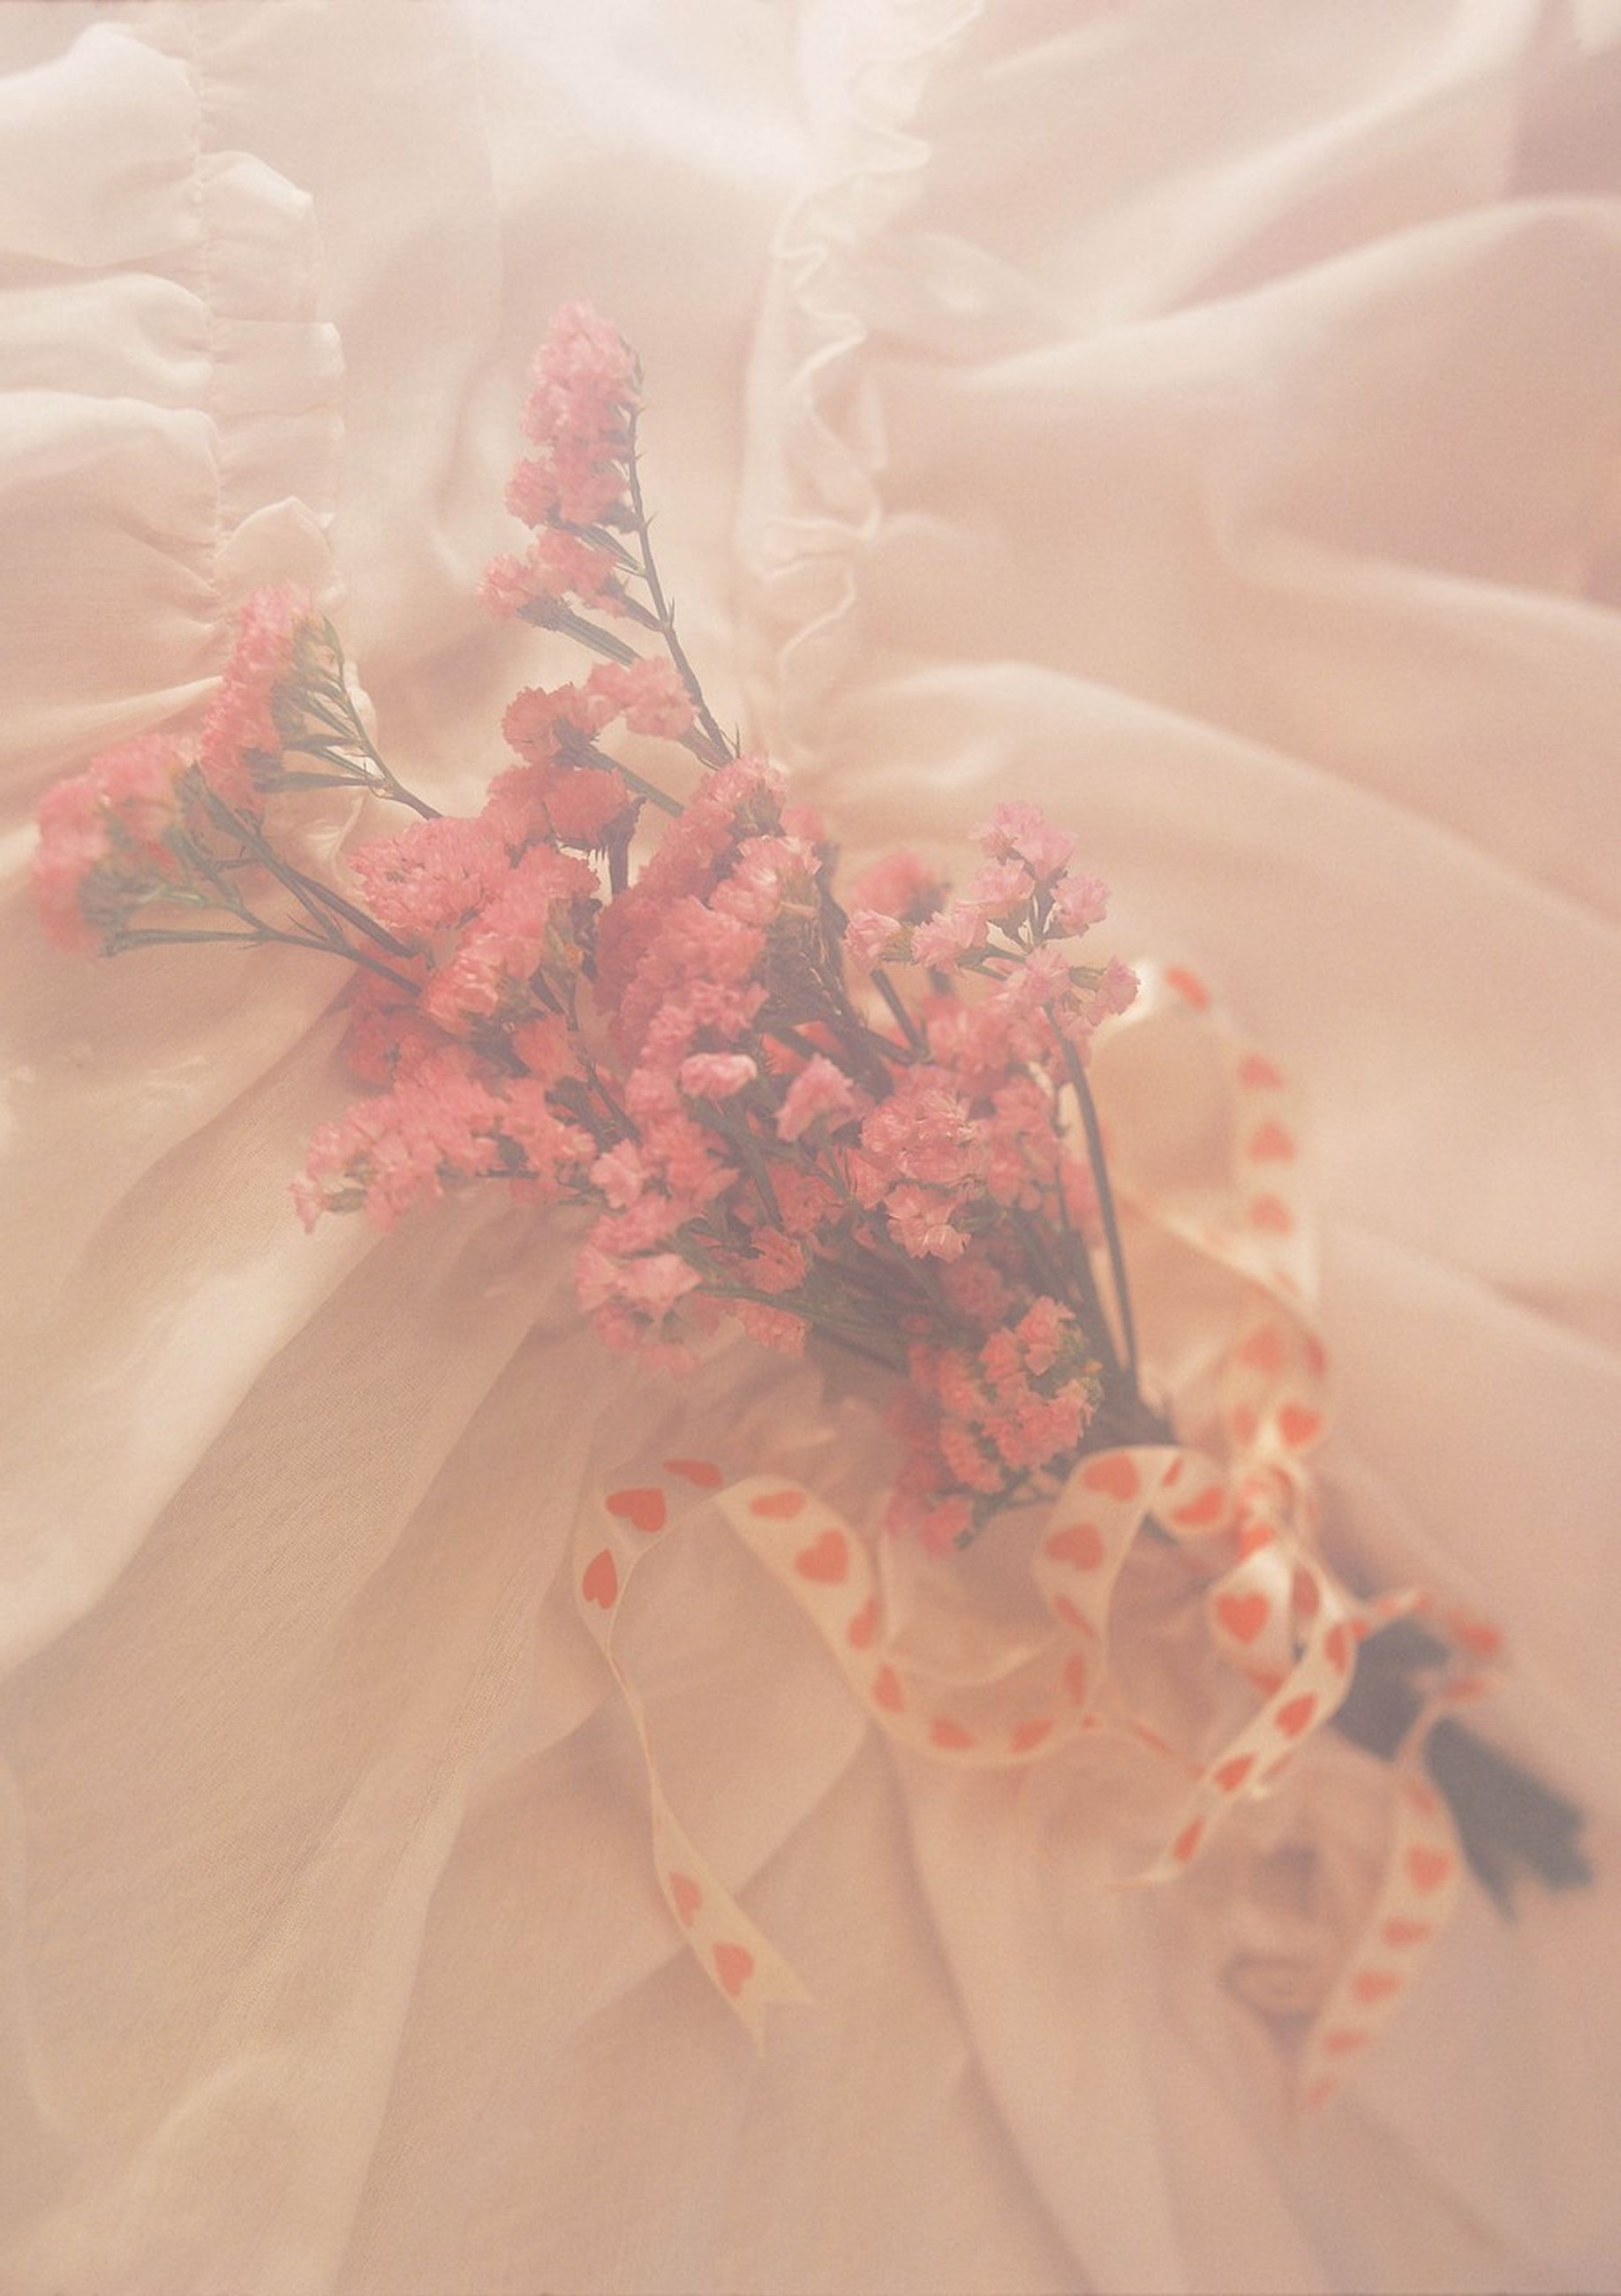 flower, petal, fragility, freshness, flower head, beauty in nature, pink color, close-up, nature, growth, plant, blooming, sunlight, indoors, no people, pink, single flower, day, high angle view, pollen